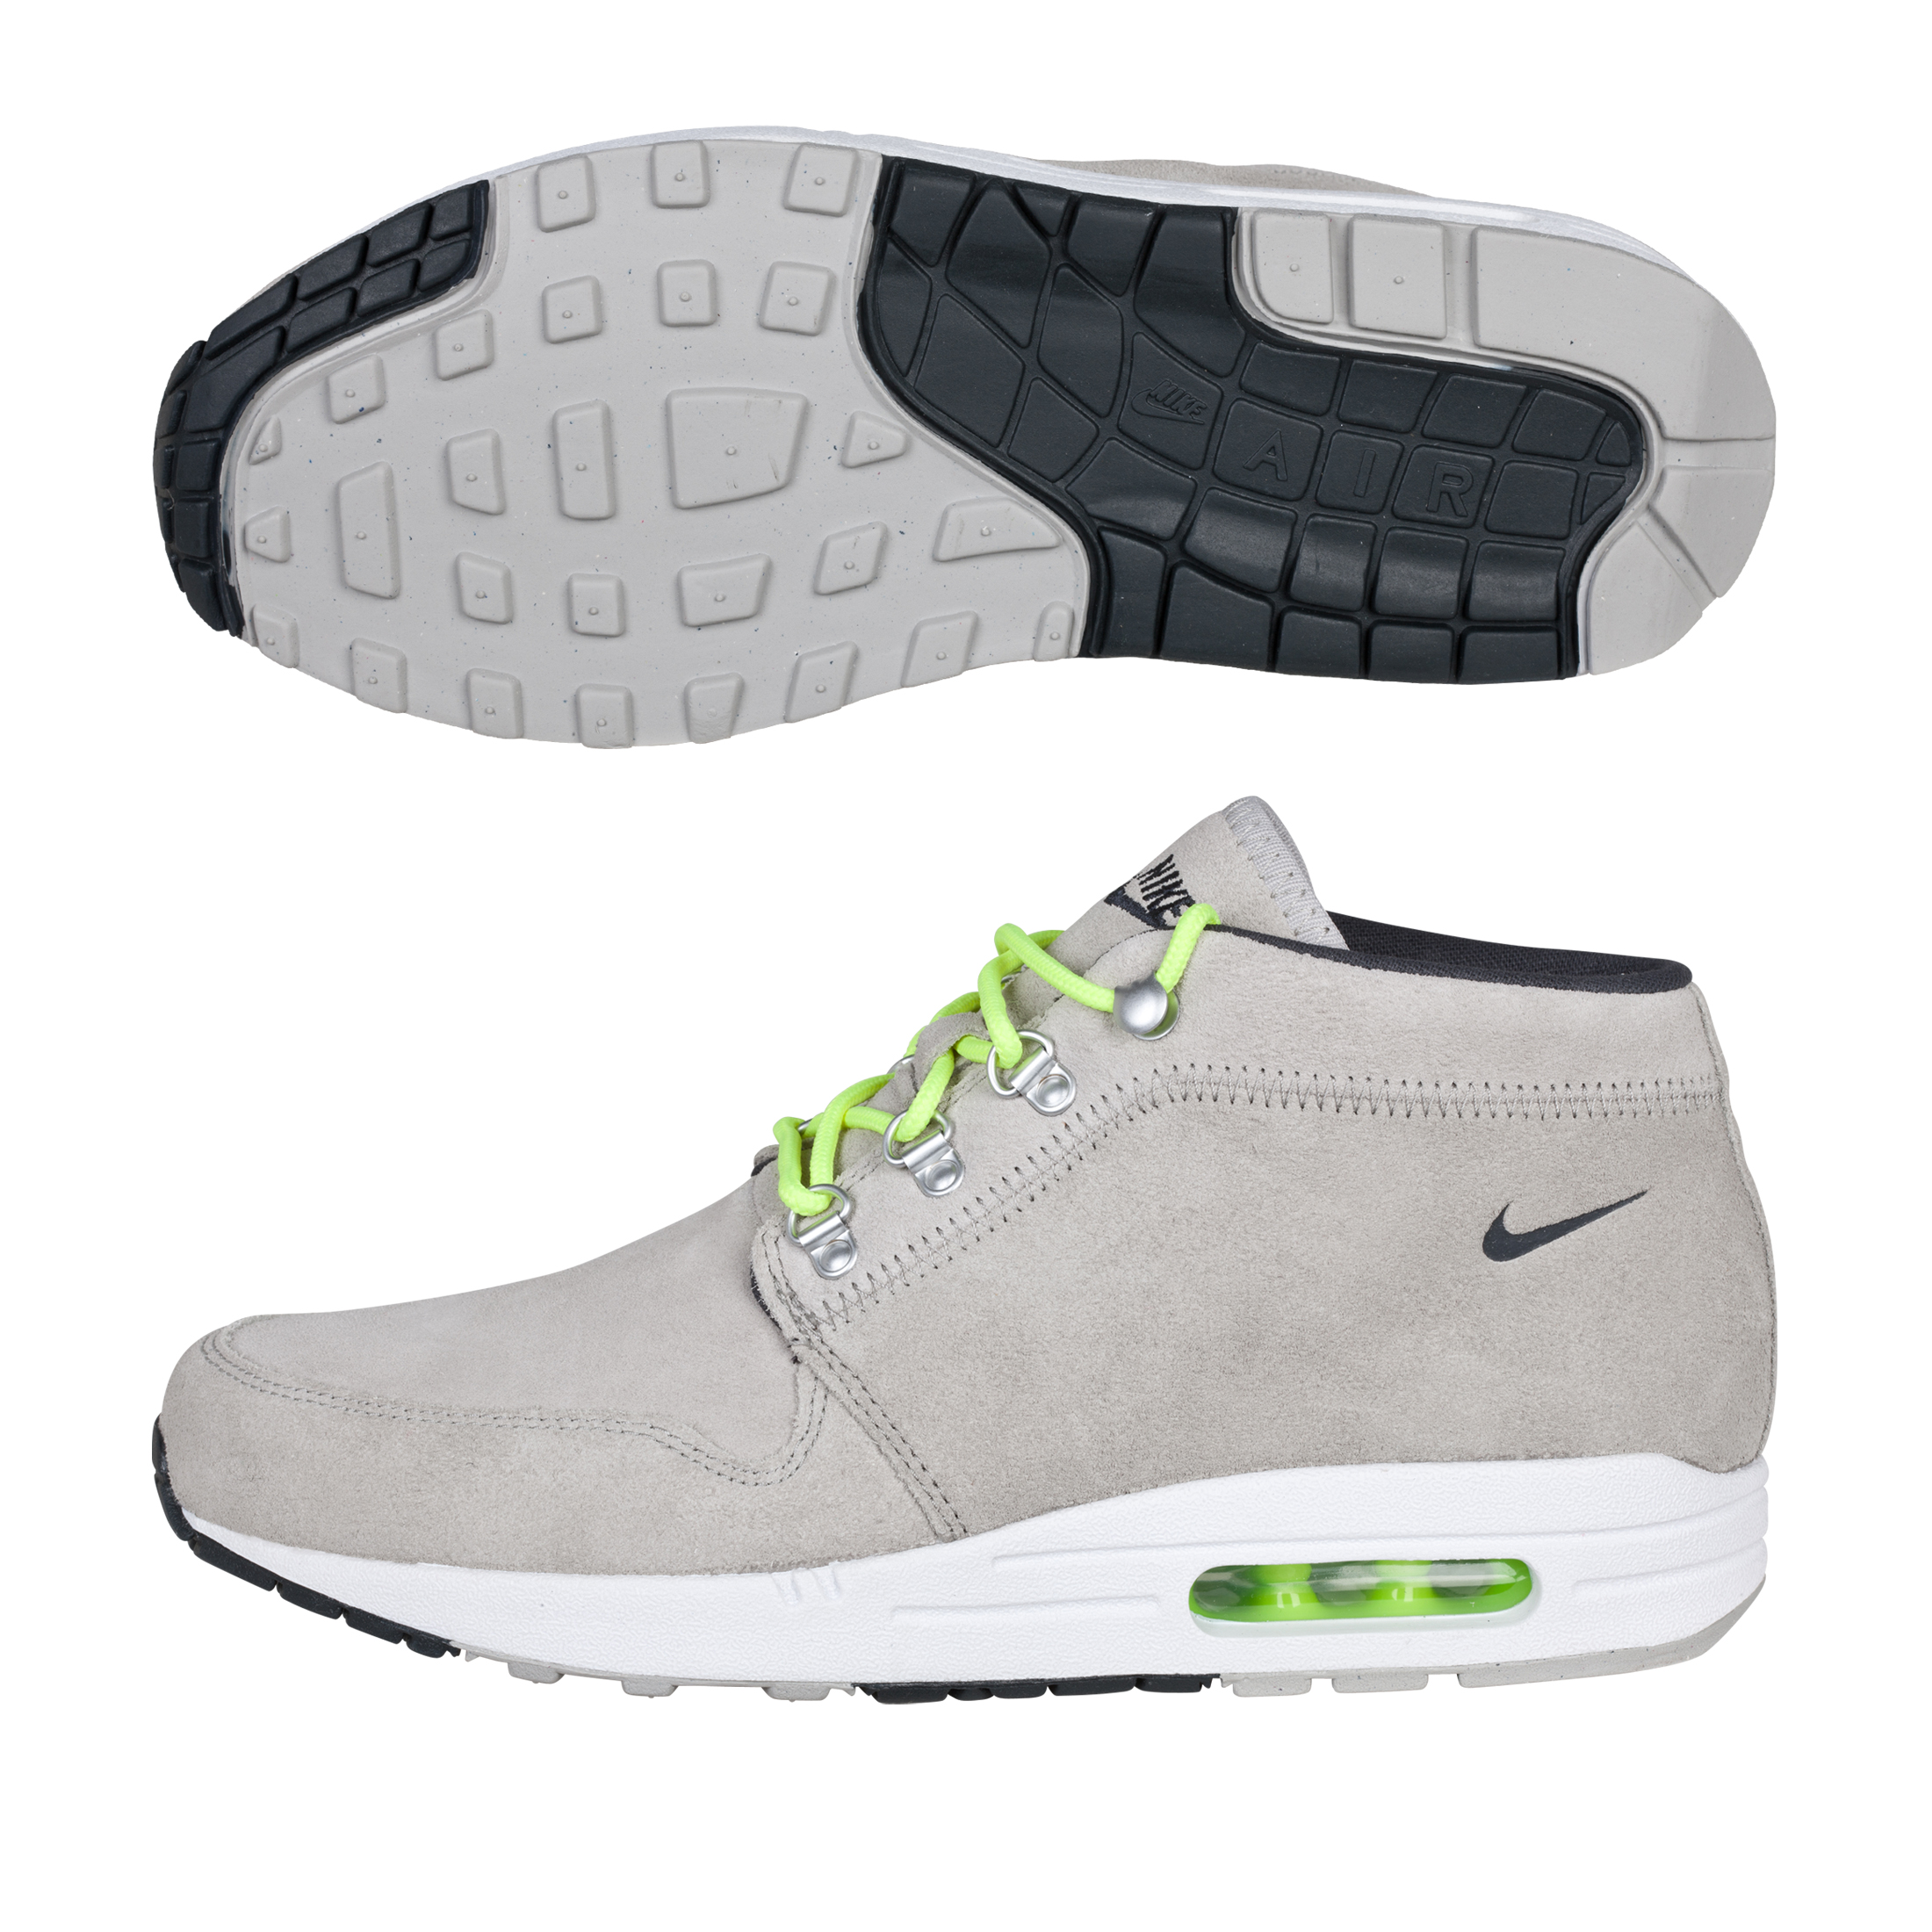 Nike Wardour Max 1 Trainers - Granite/Anthracite/Volt/White